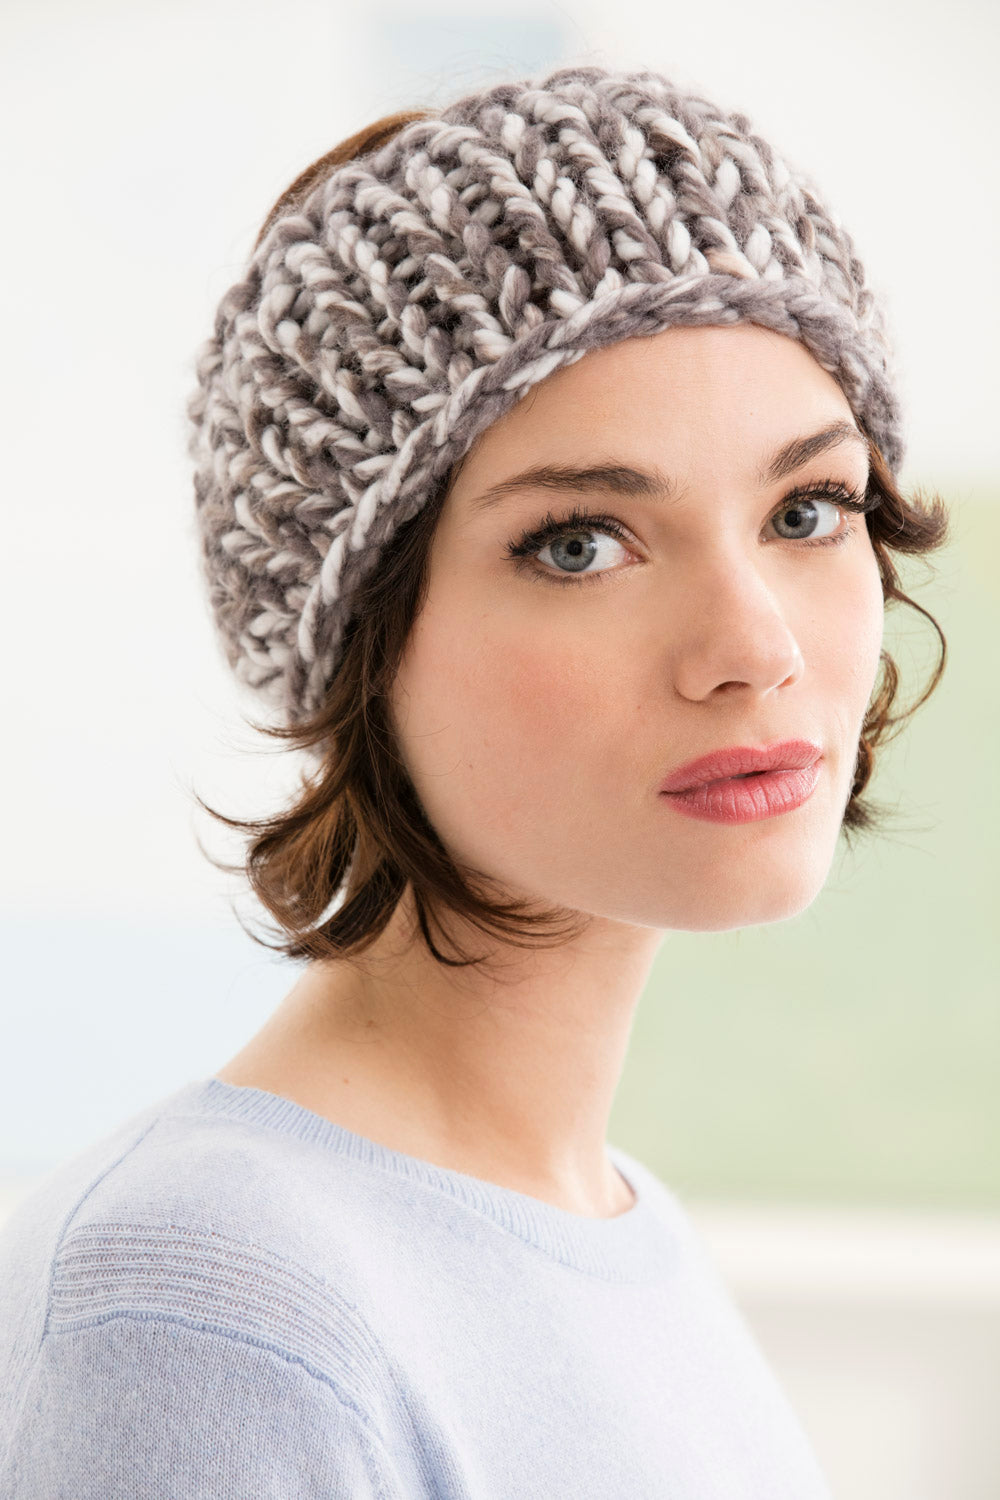 Chunky gray and white knitted headband pattern.